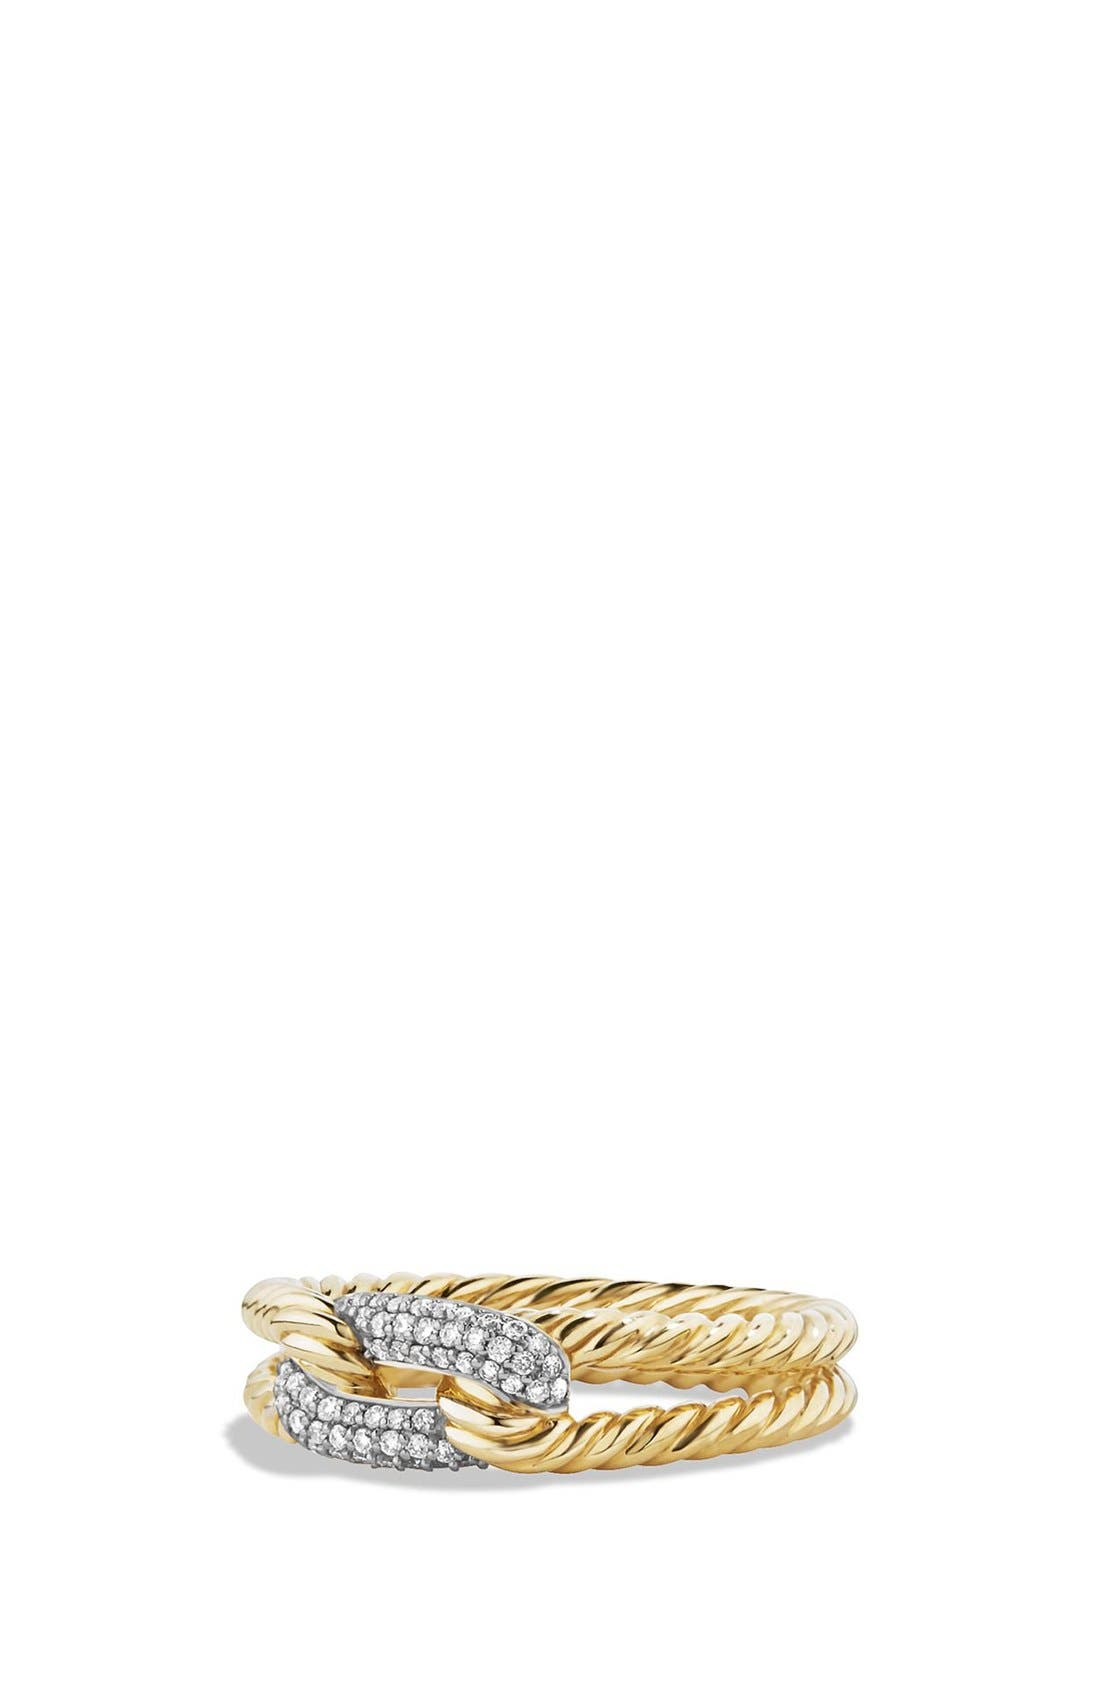 Main Image - David Yurman 'Petite Pavé' Loop Ring with Diamonds in 18K Gold